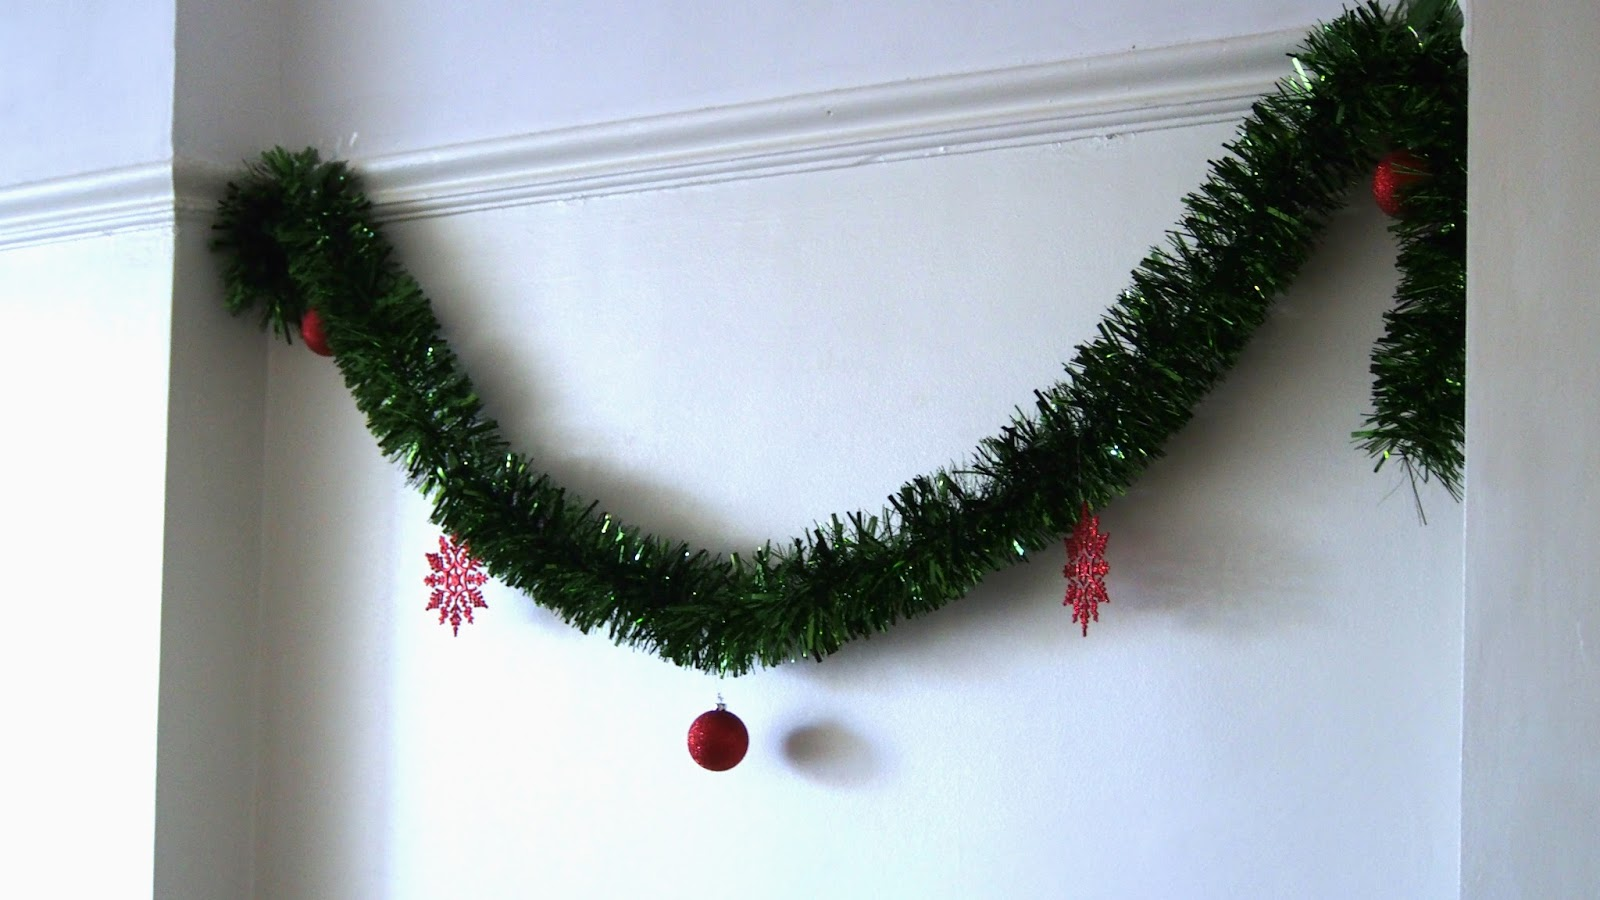 Tinsel on wall